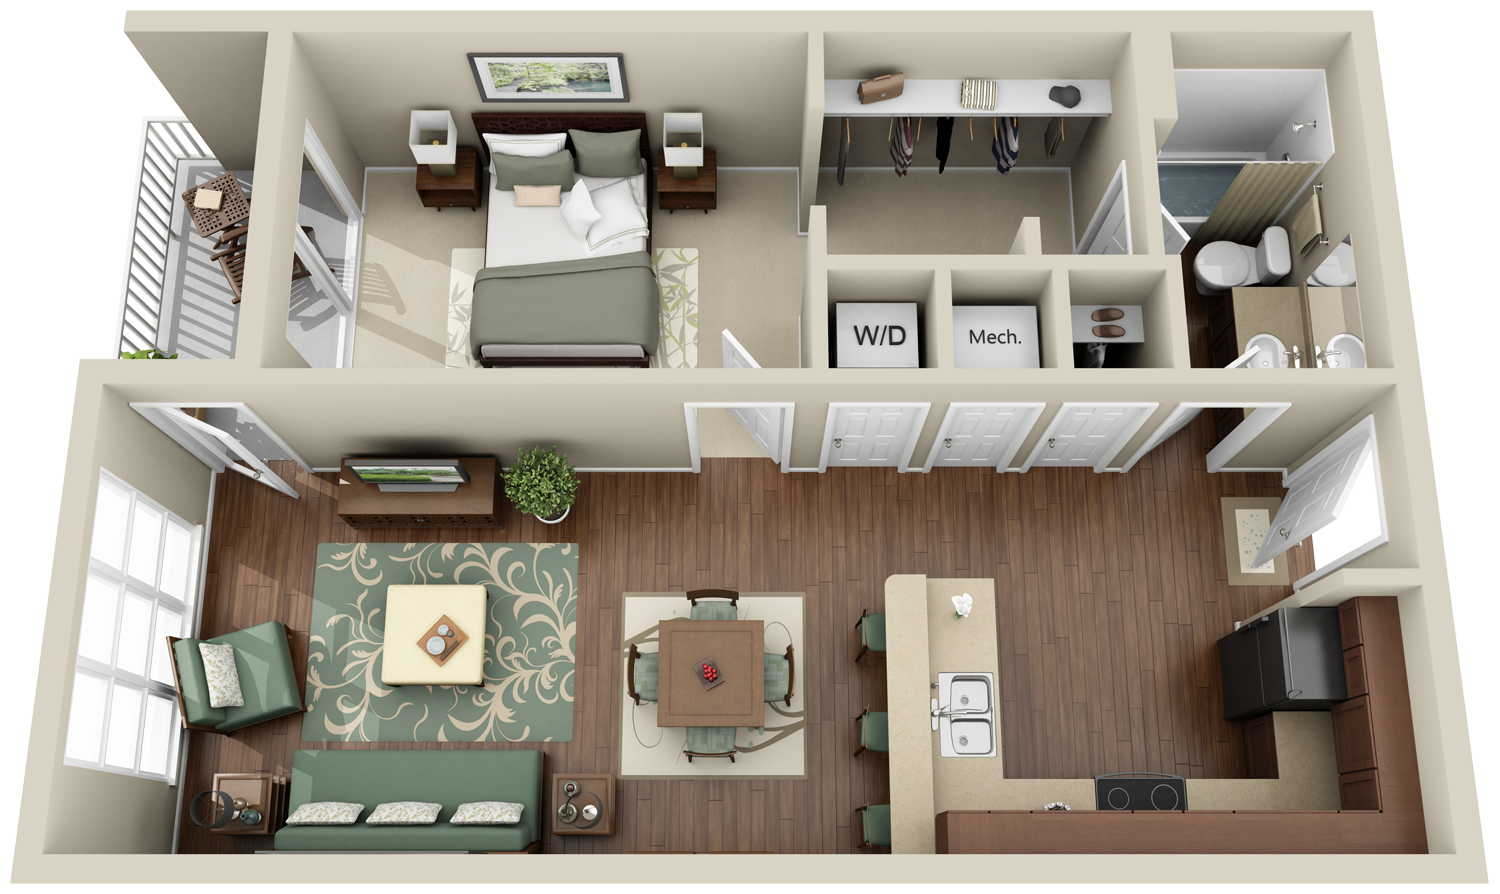 13 awesome 3d house plan ideas that give a stylish new look to your home - Home design d apk ...